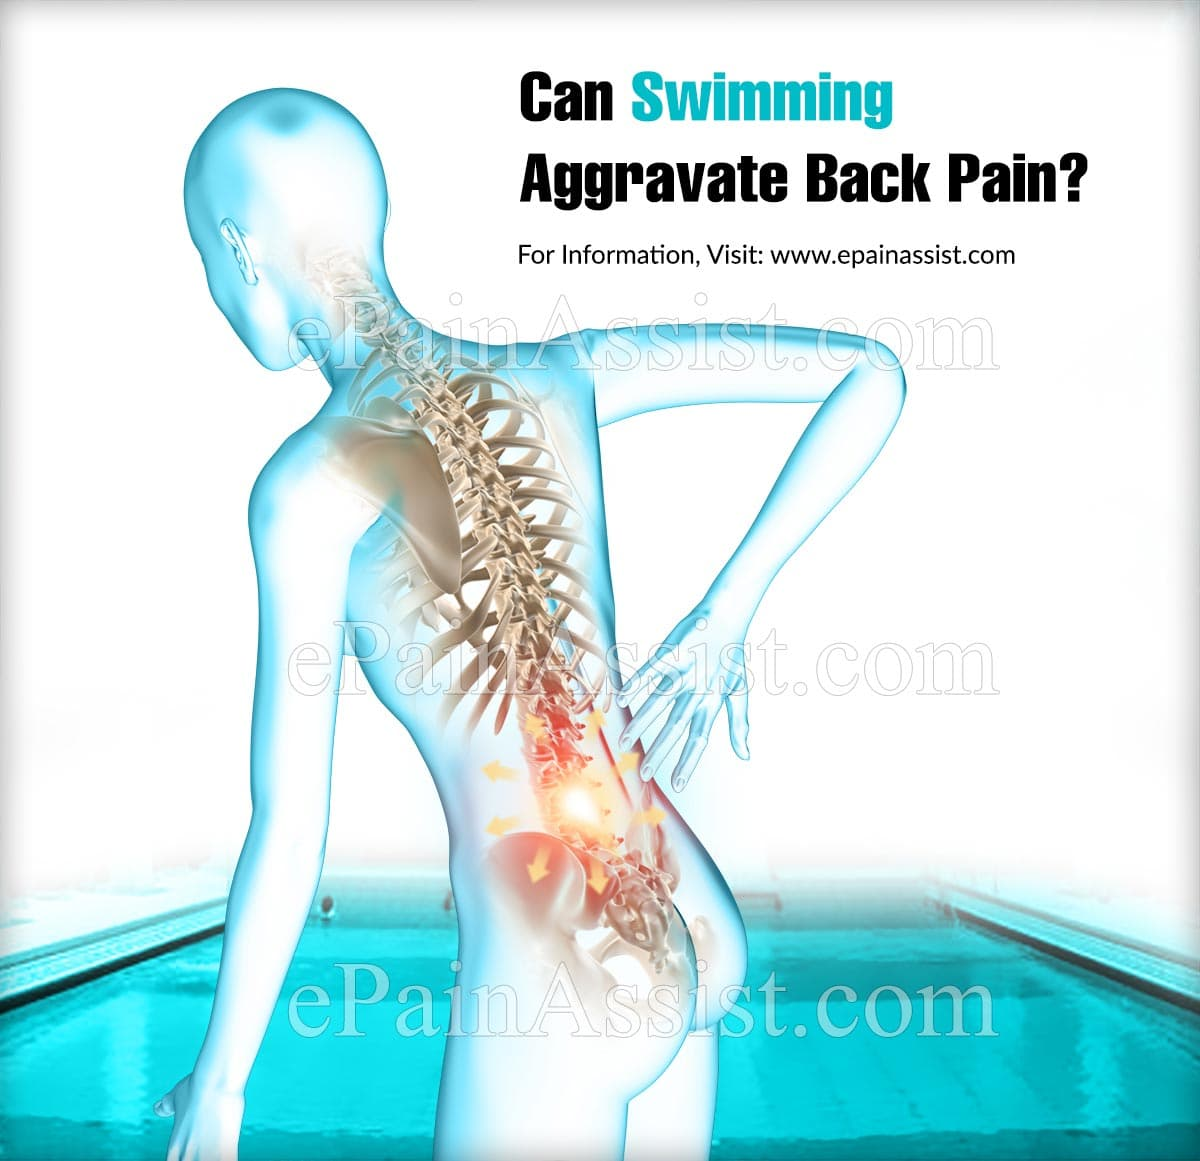 Can Swimming Aggravate Back Pain?